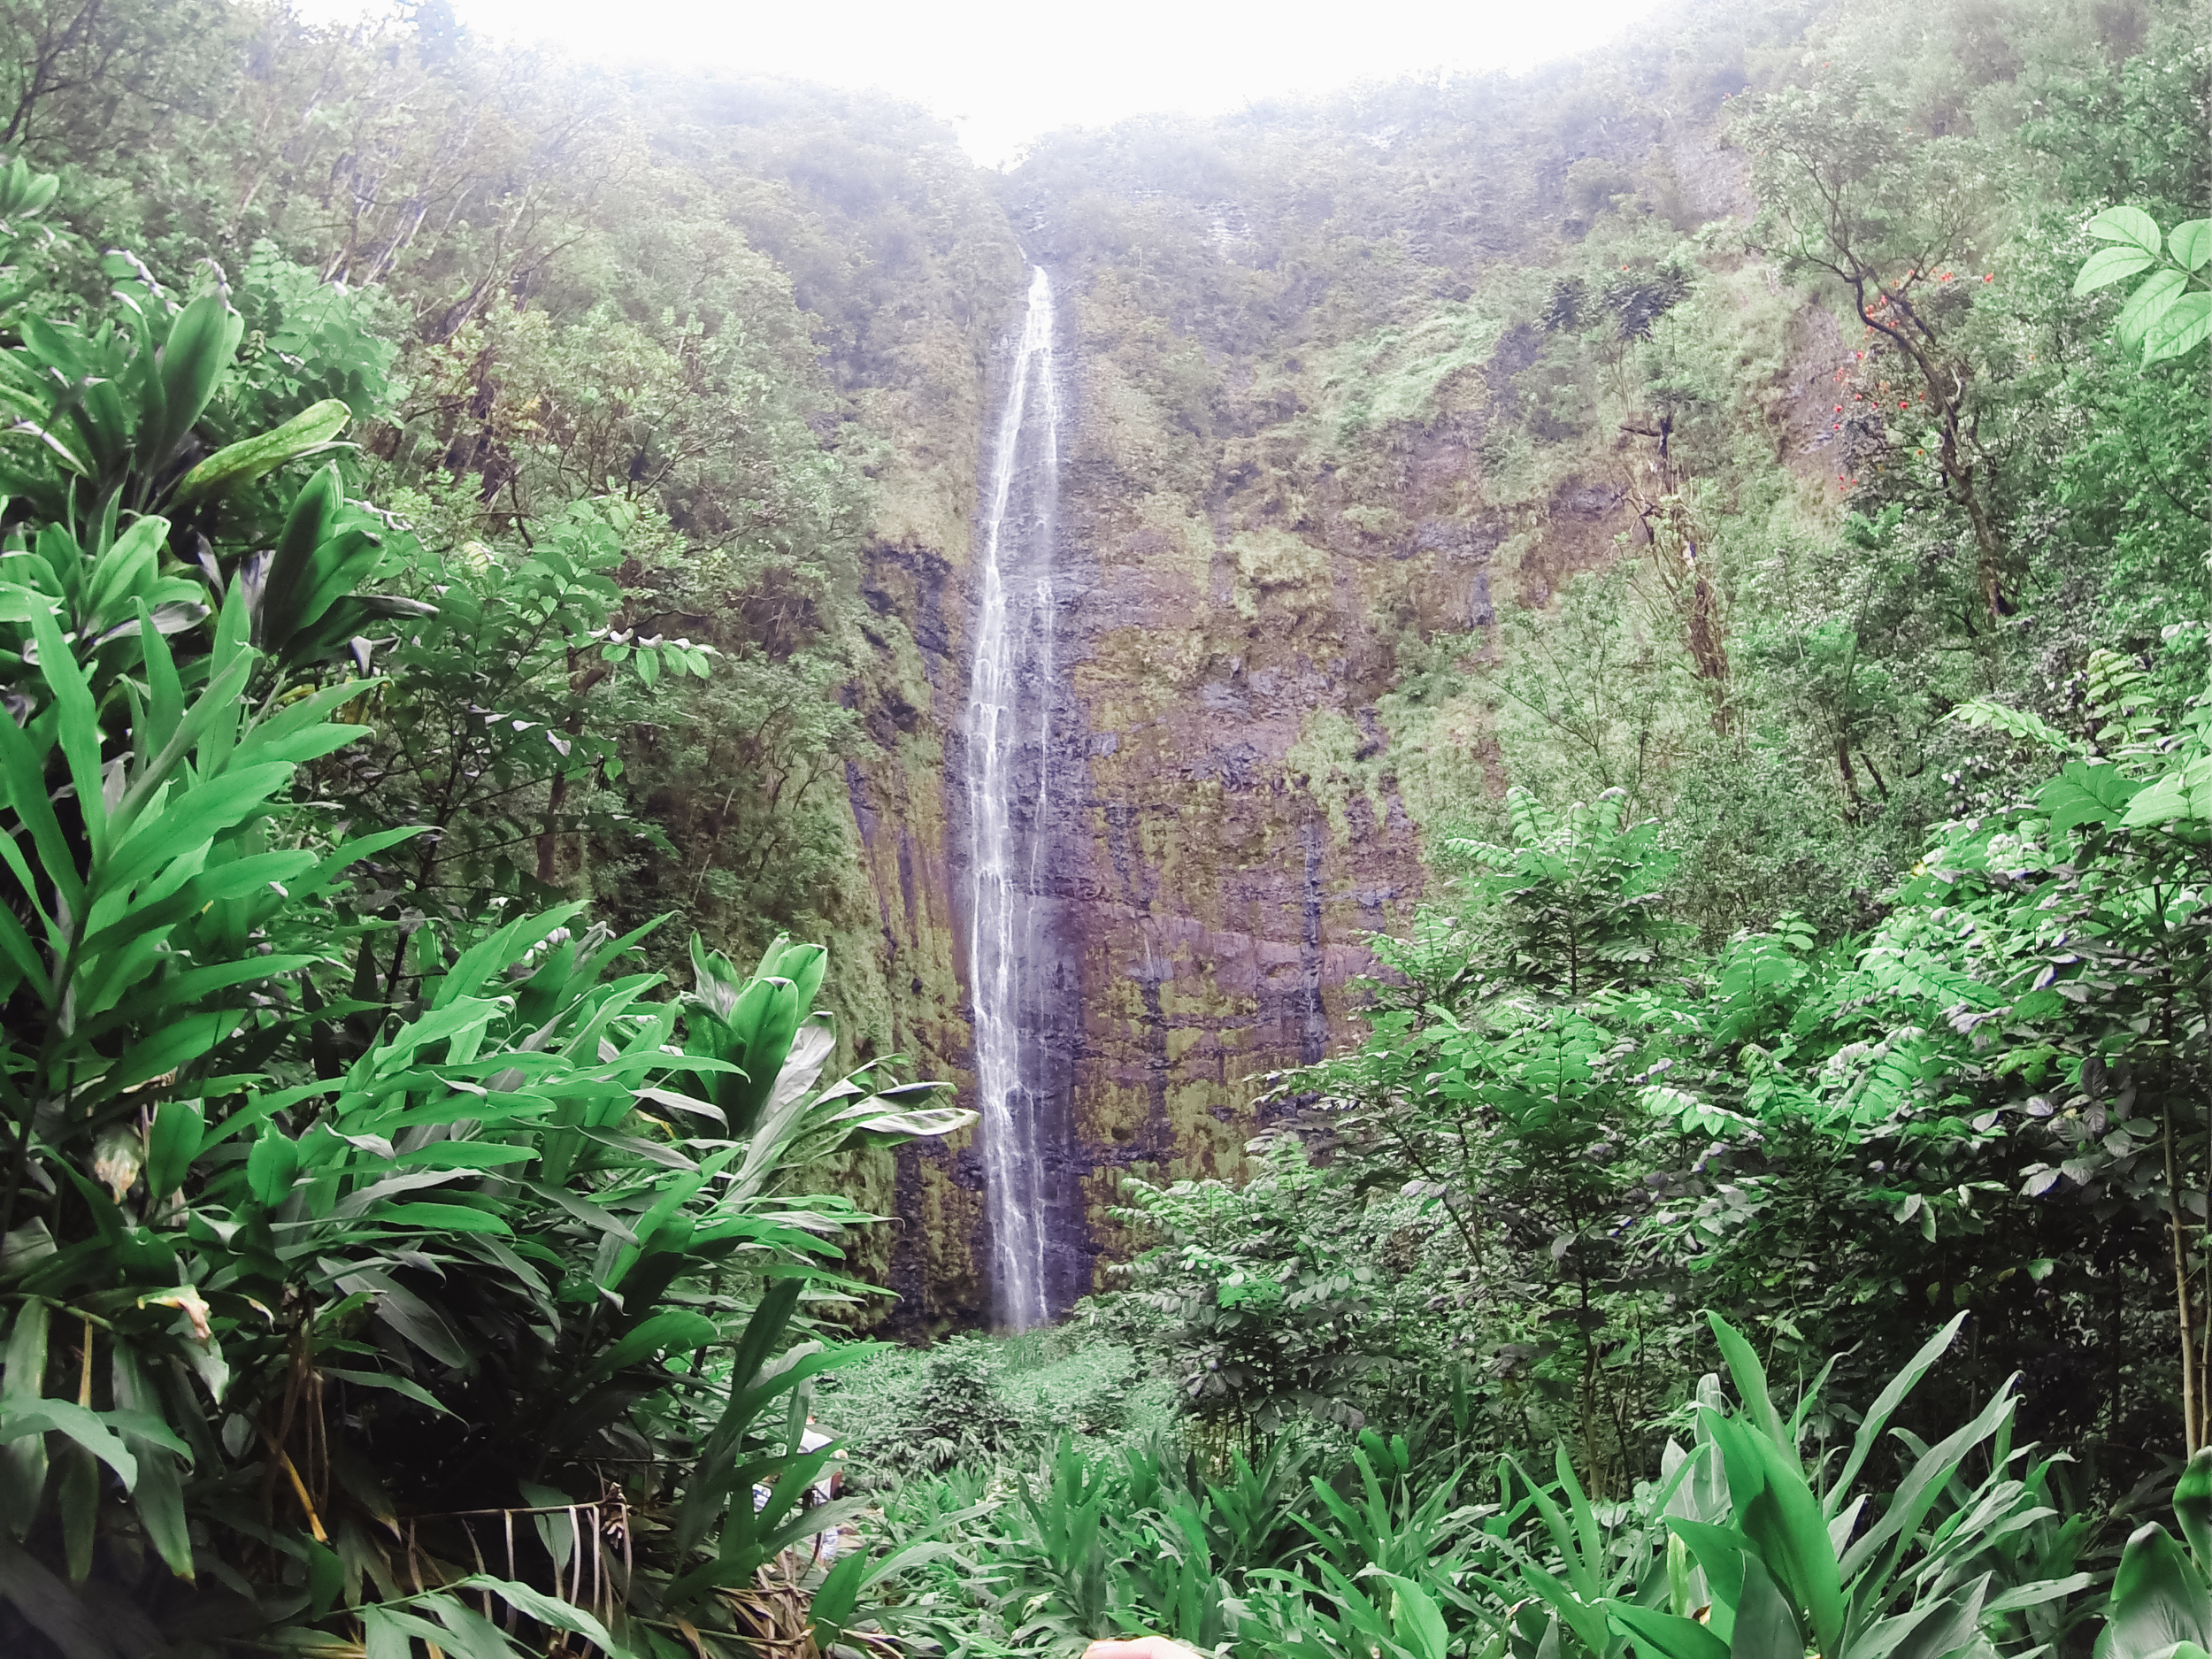 Waimoku falls is the turnaround point of pipiwei trail. 400 feet high, this beast of a waterfall can turn deadly during the lightest rains.